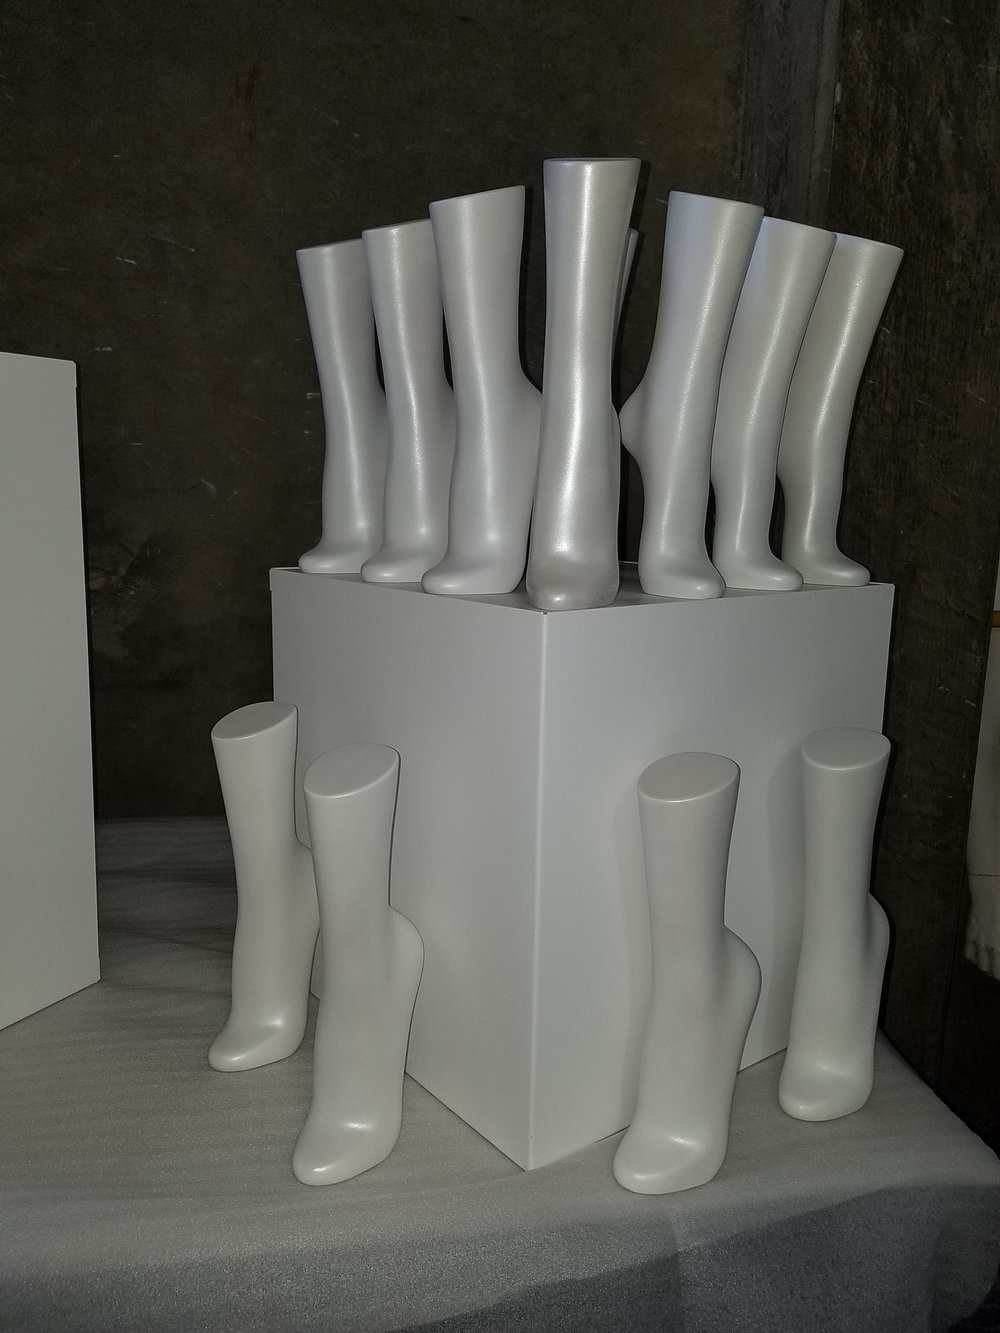 Sock Forms